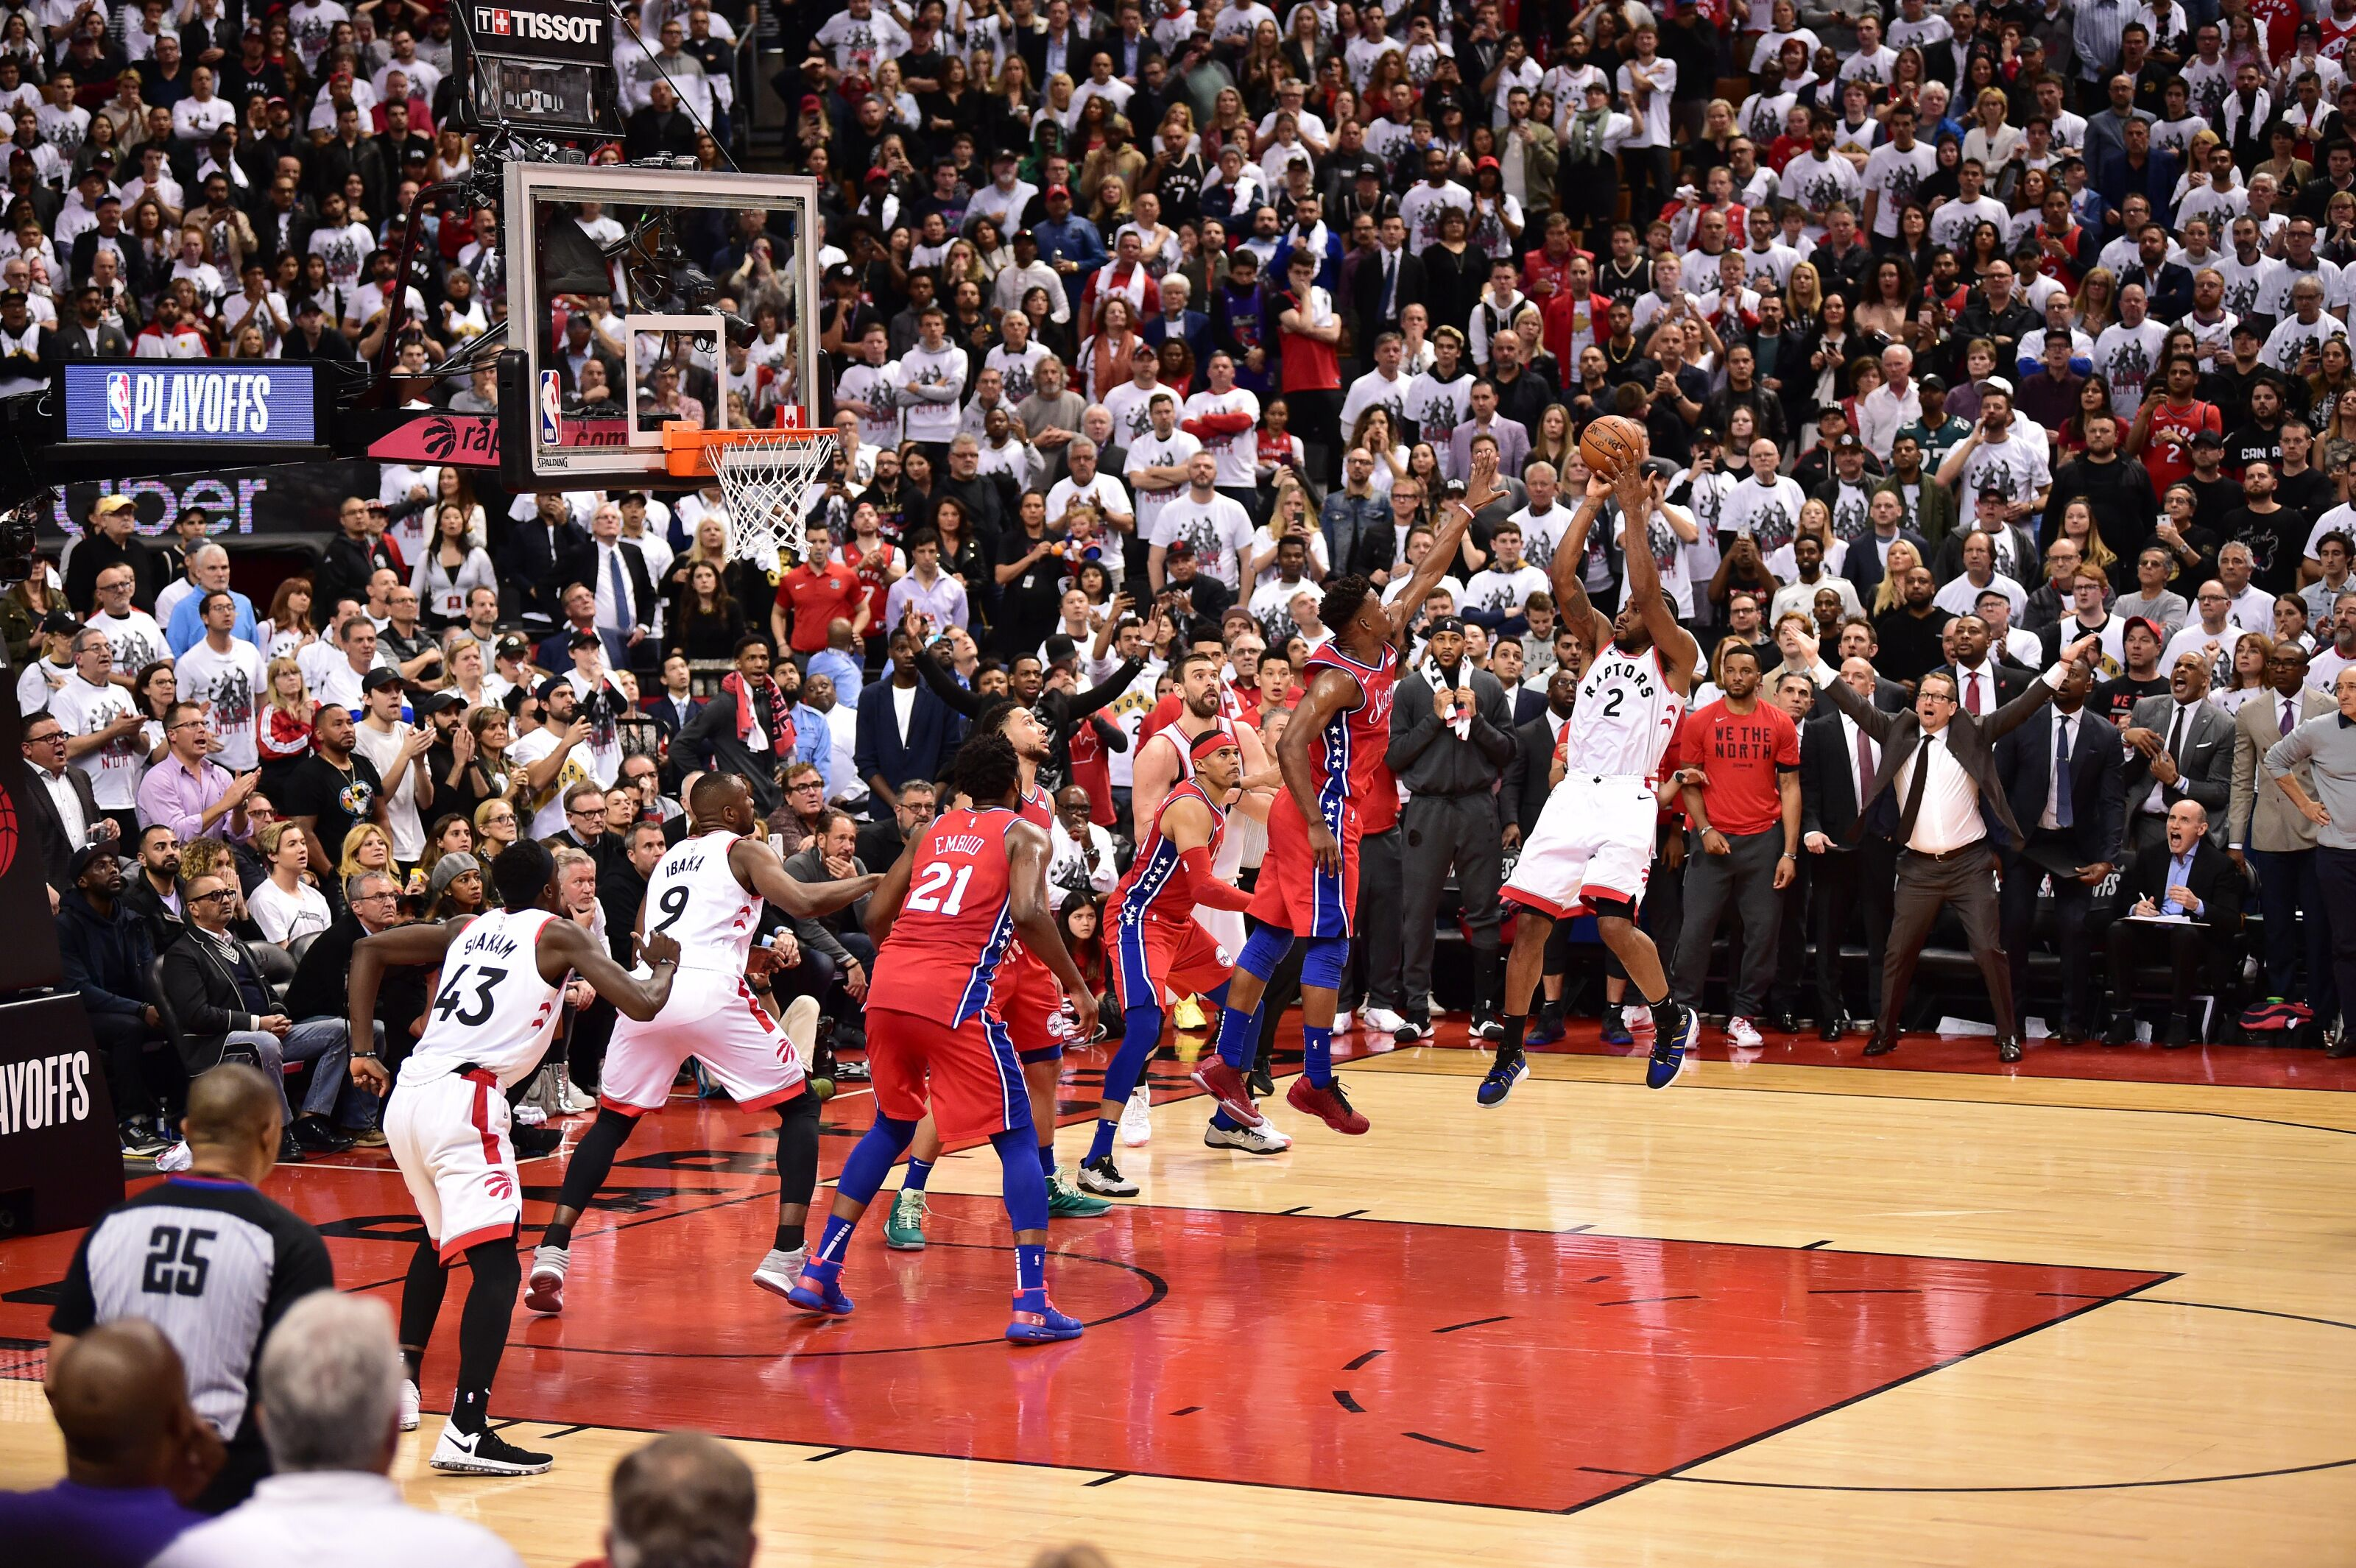 fde24217fa58 Kawhi Leonard has crowned himself king of the north with buzzer beater